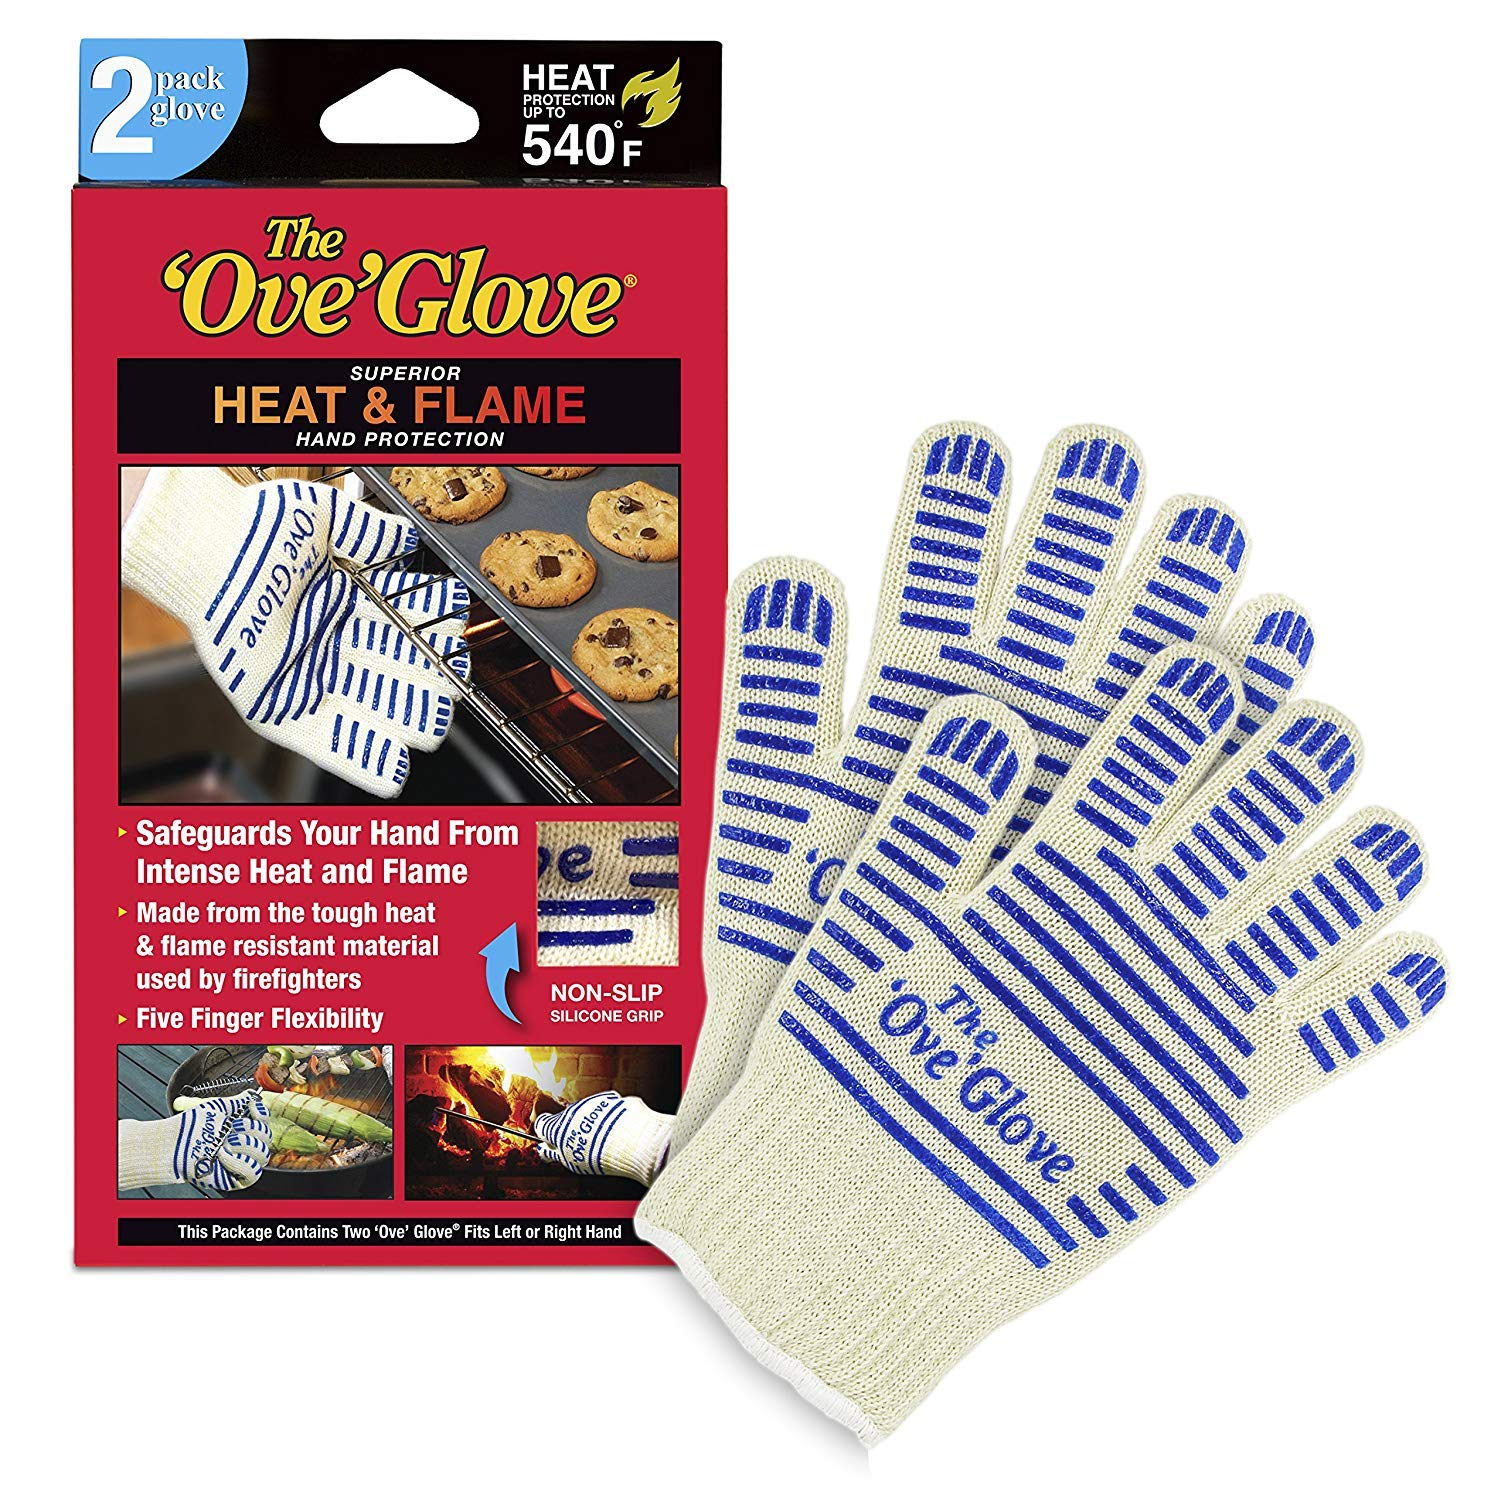 The Ove Glove - Superior HEAT & FLAME Hand Protection - 1 PAIR by 'Ove' Glove